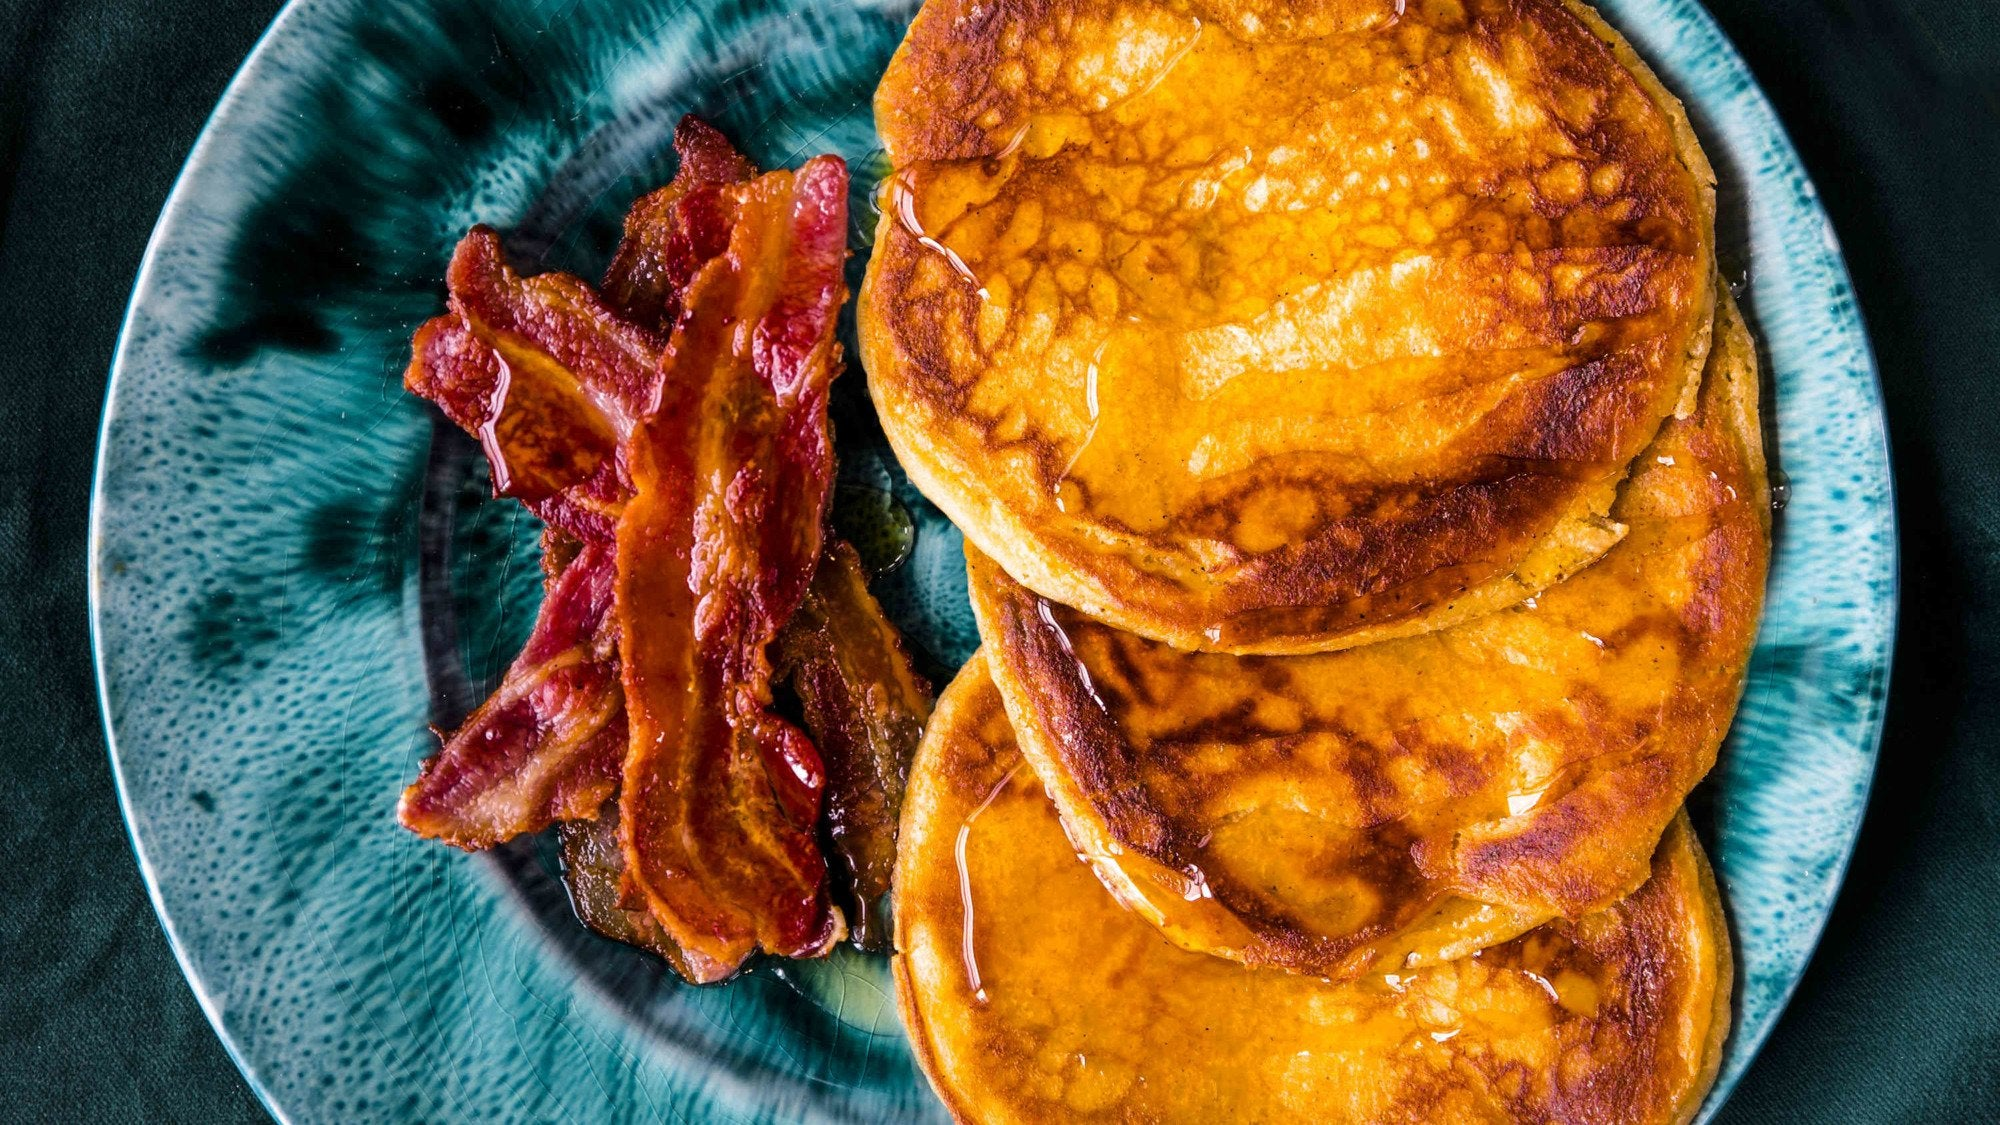 American-Style Pancakes